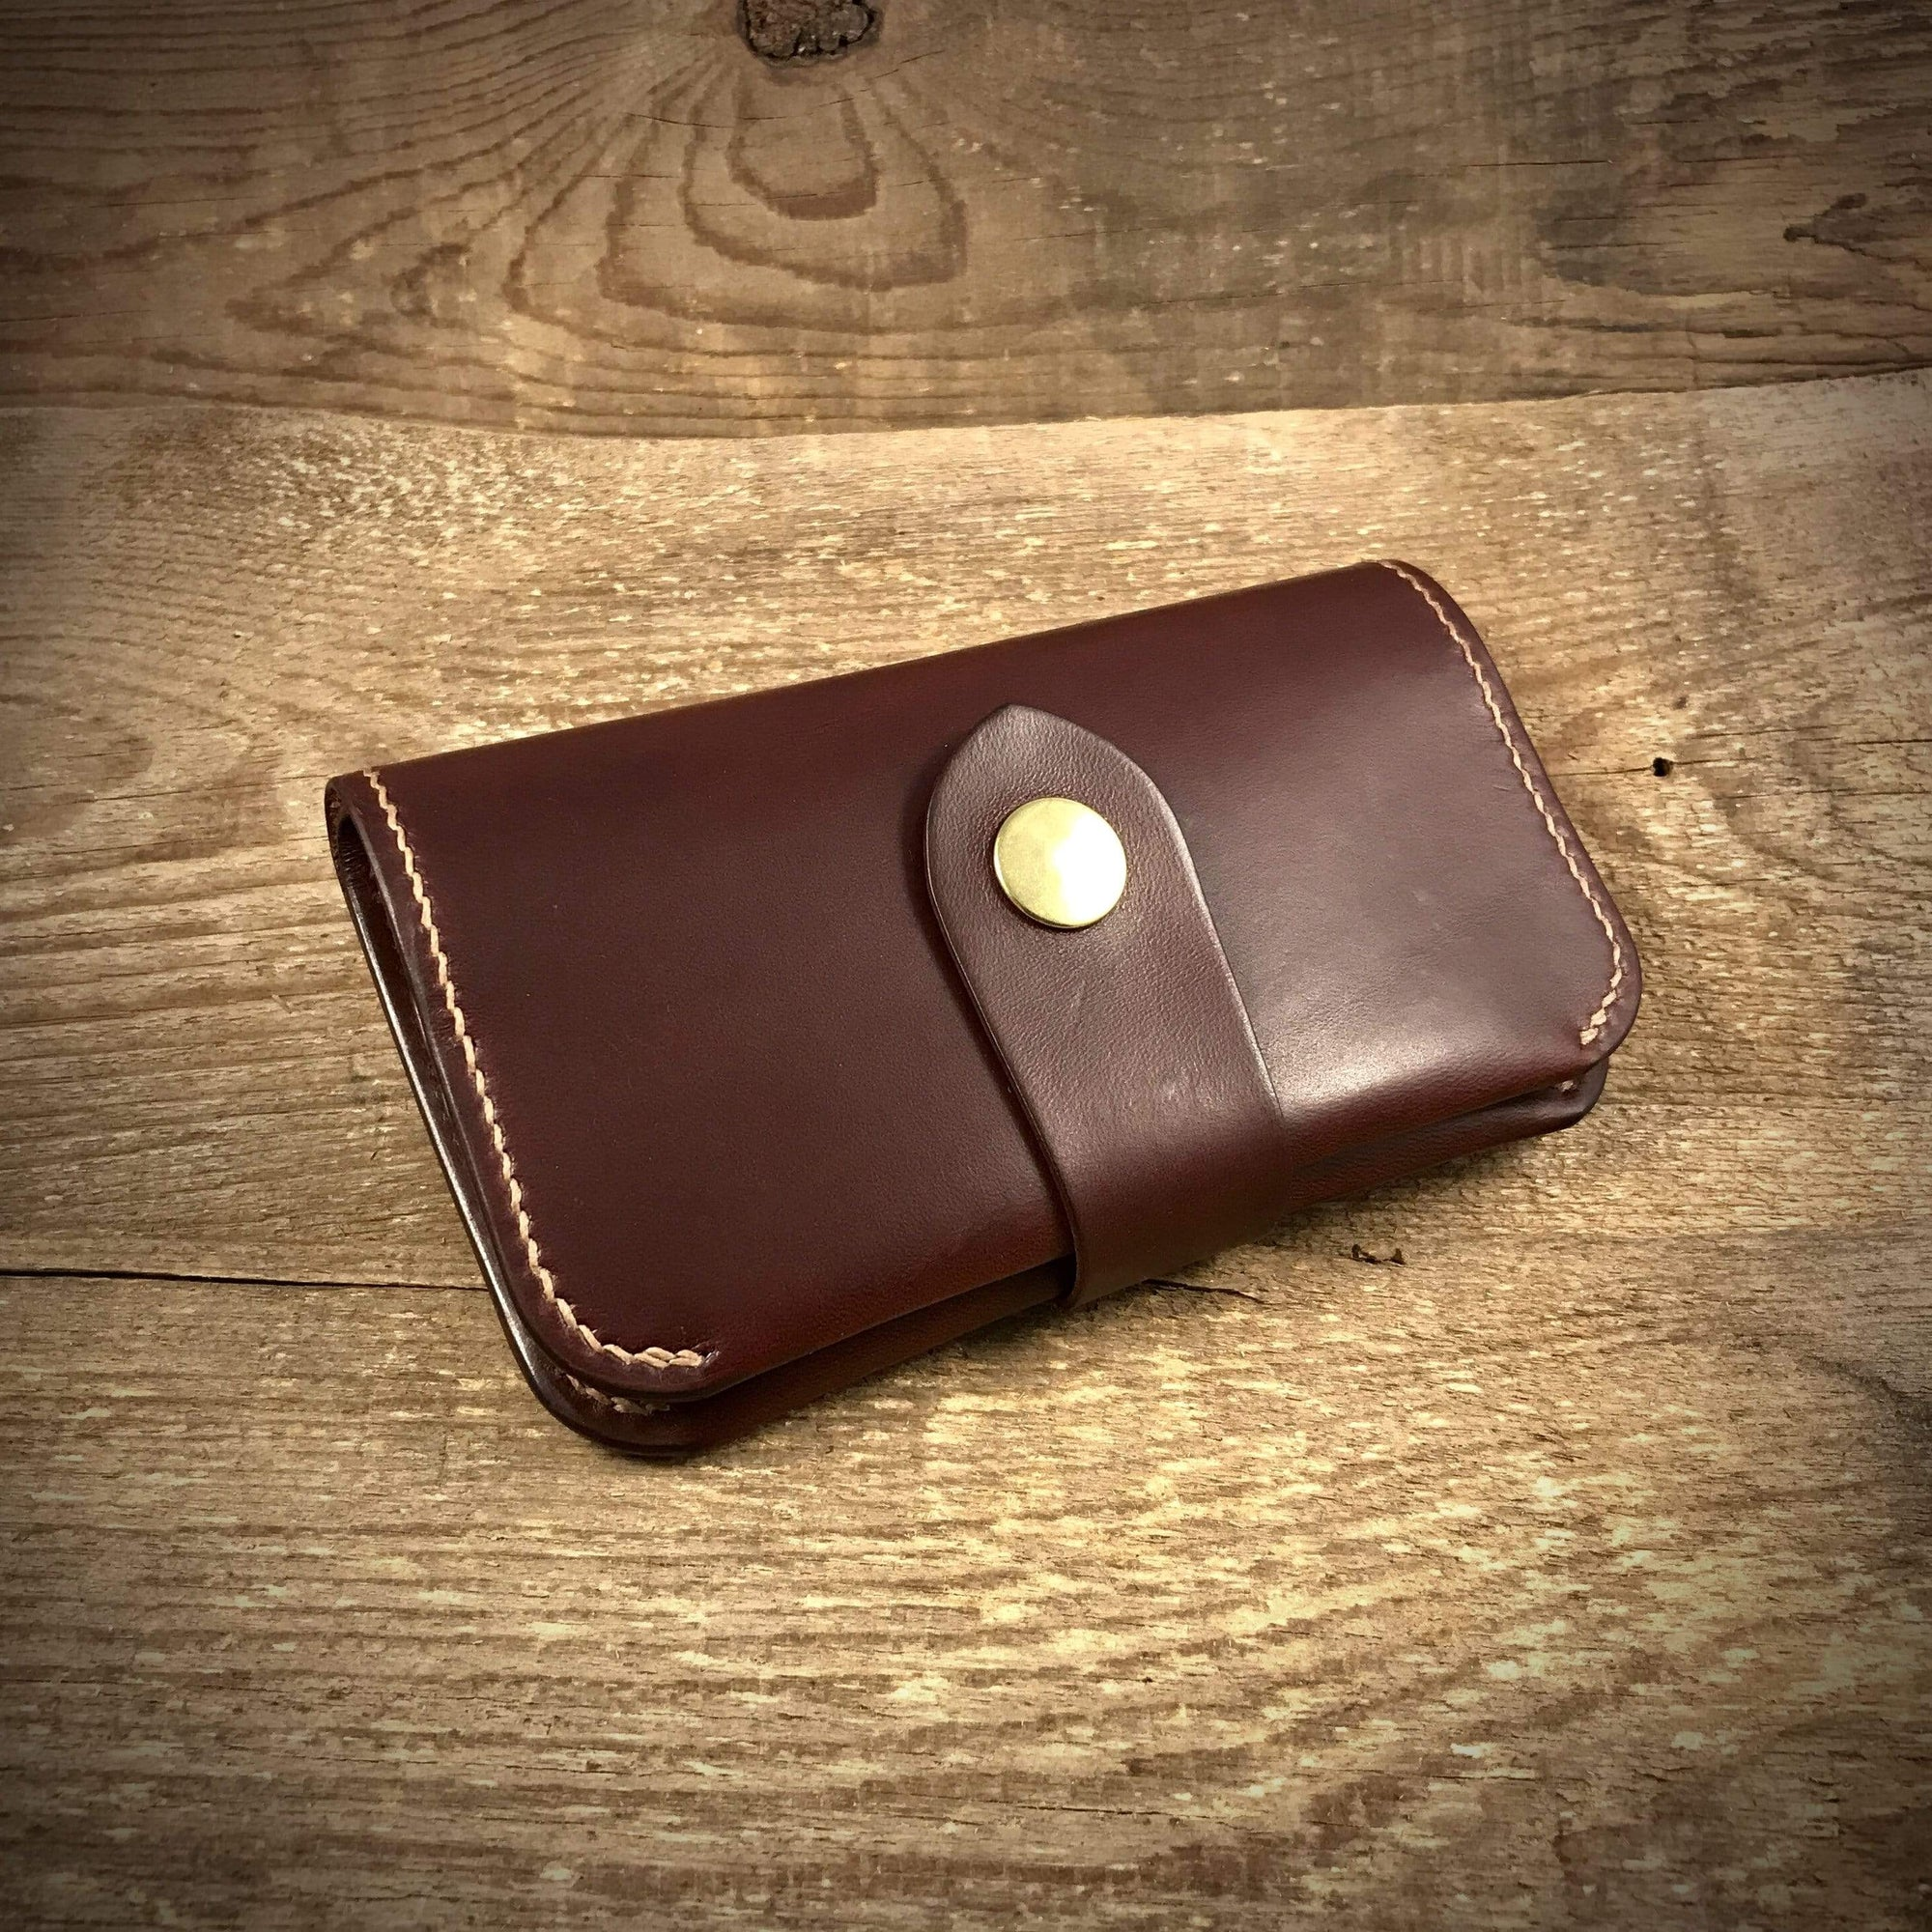 TexuCrafts Accessories Honey Leather Tobacco Pouch